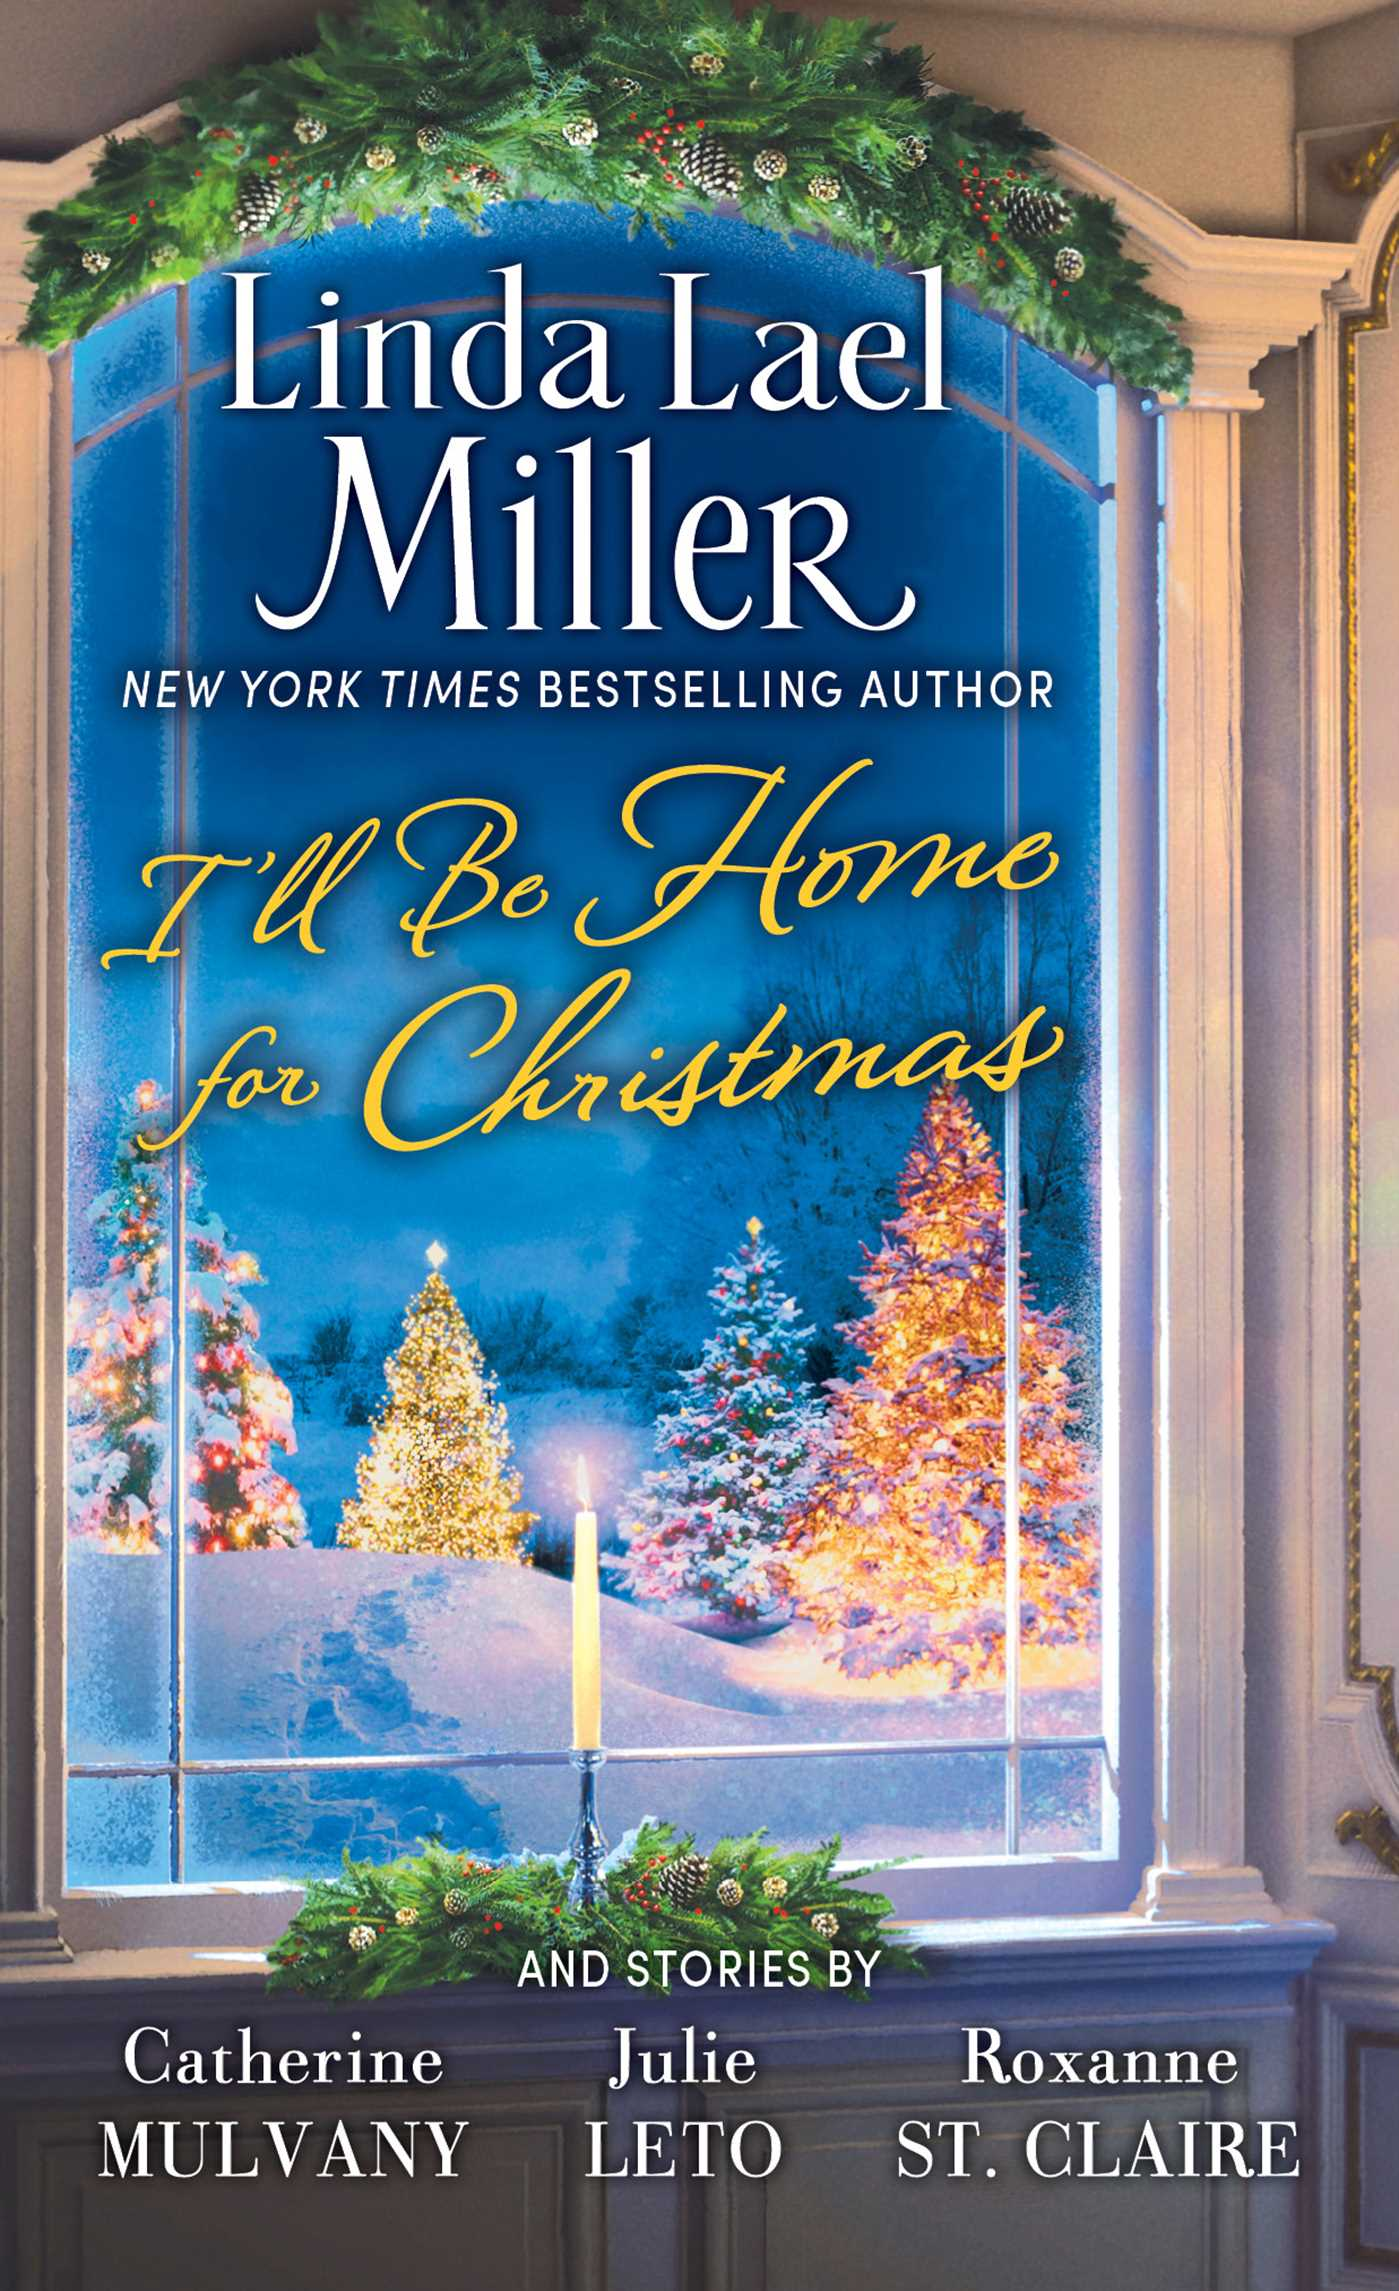 book cover image jpg ill be home for christmas ebook 9781416548348 author - Who Wrote I Ll Be Home For Christmas